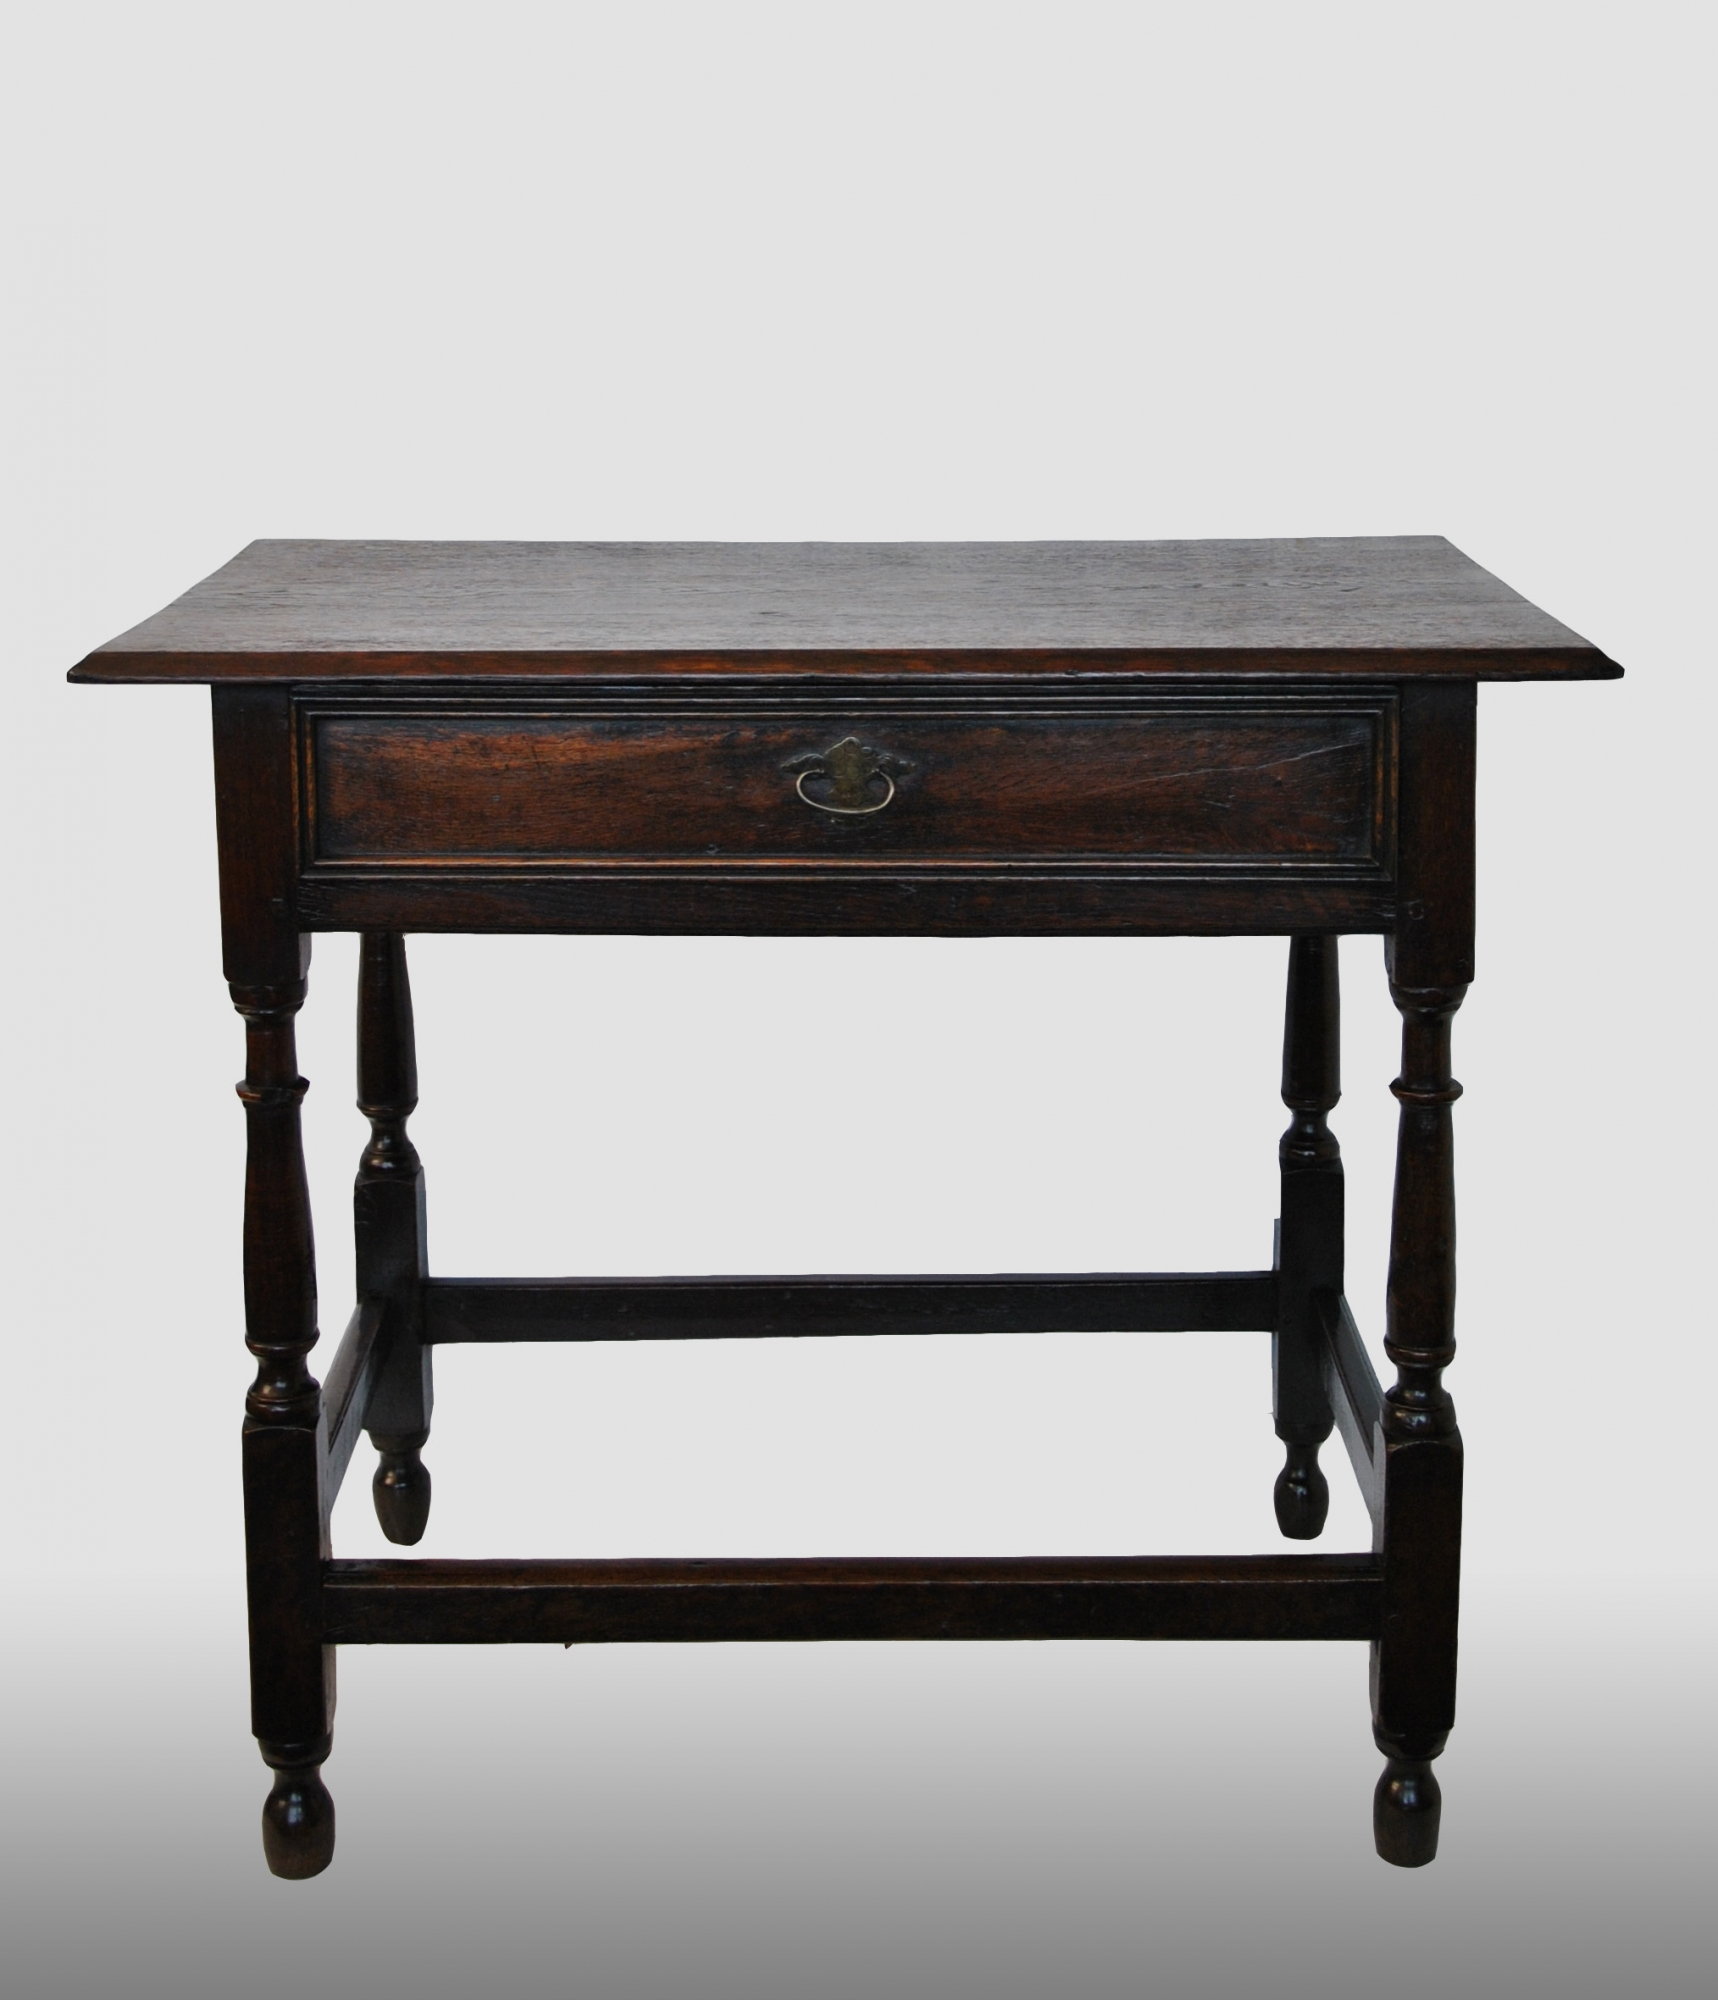 English table with drawer made of oak 18th century for England table